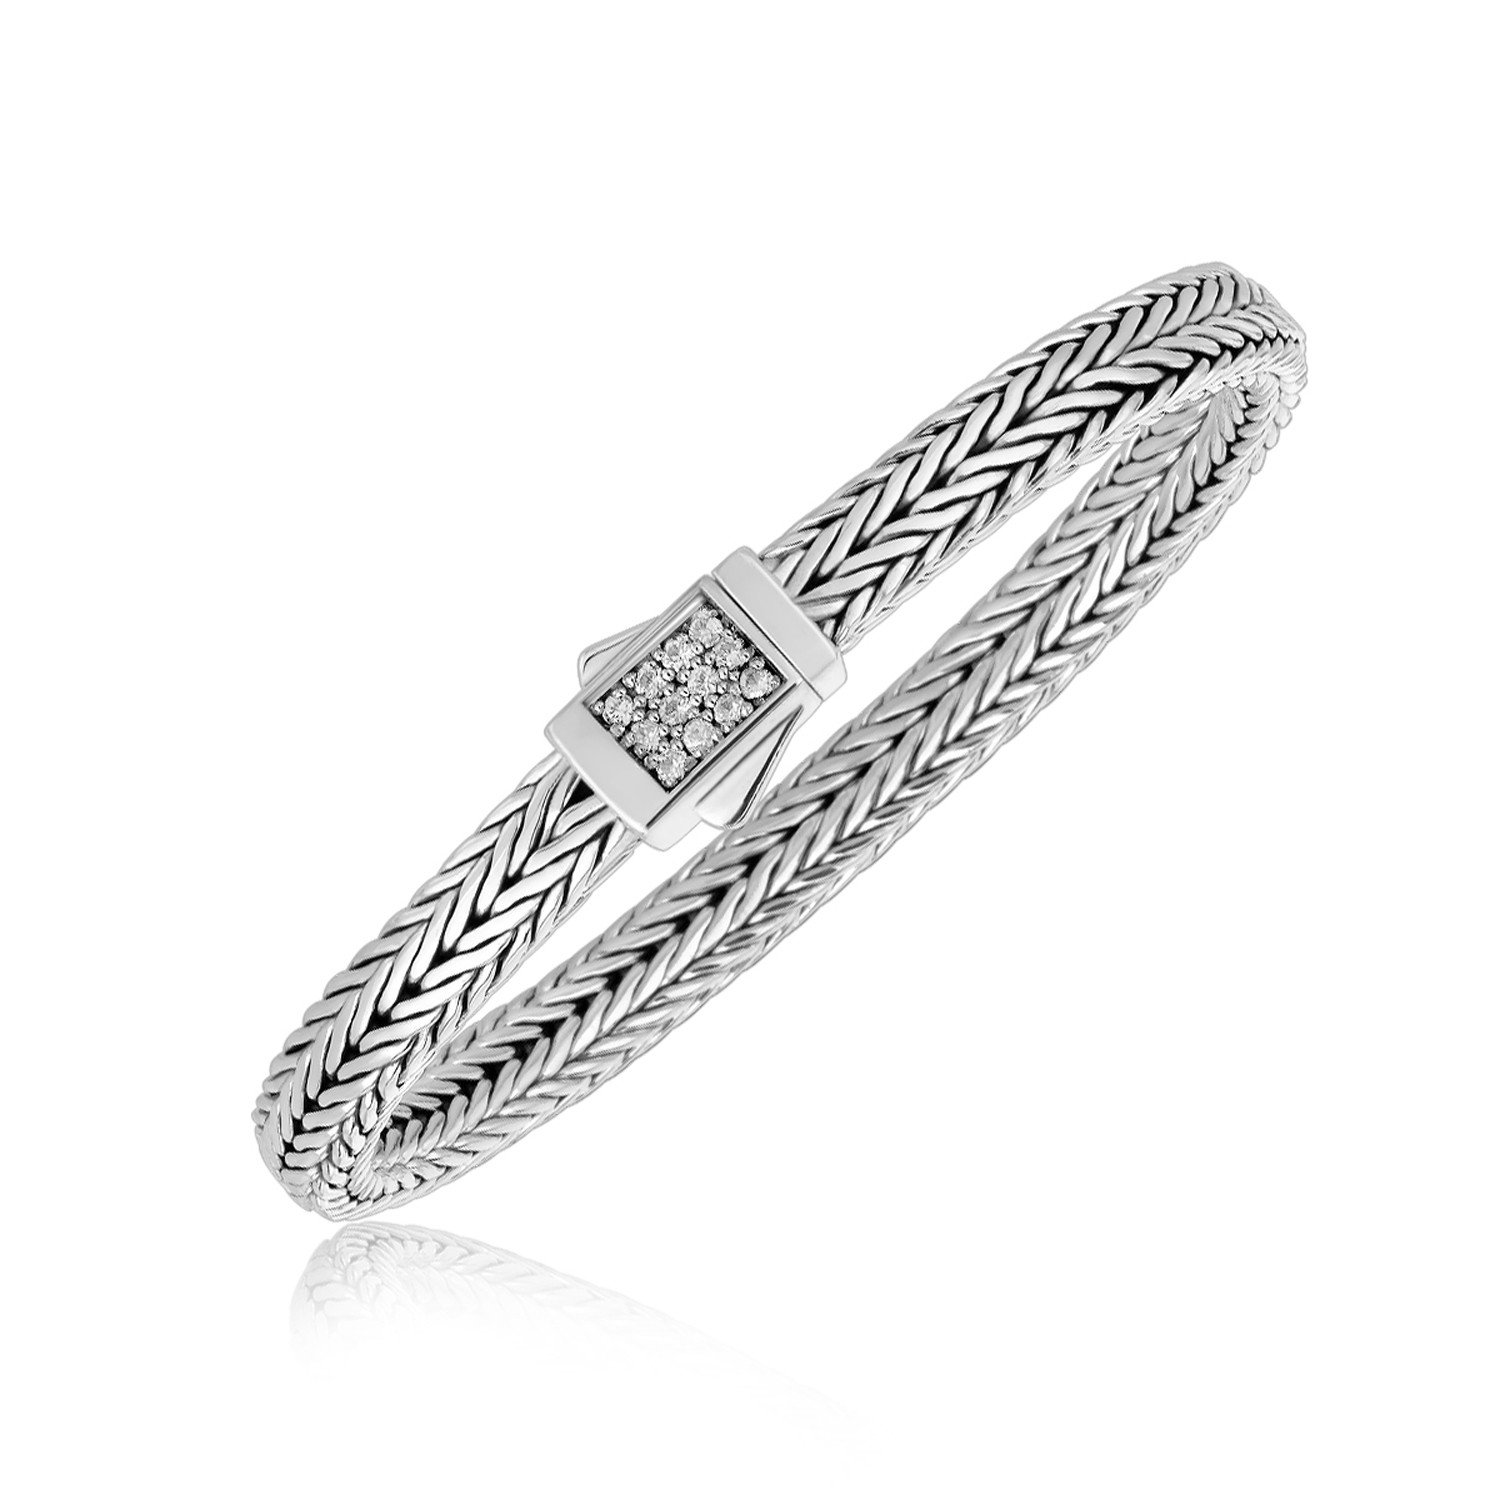 Sterling silver braided style menus bracelet with white sapphire